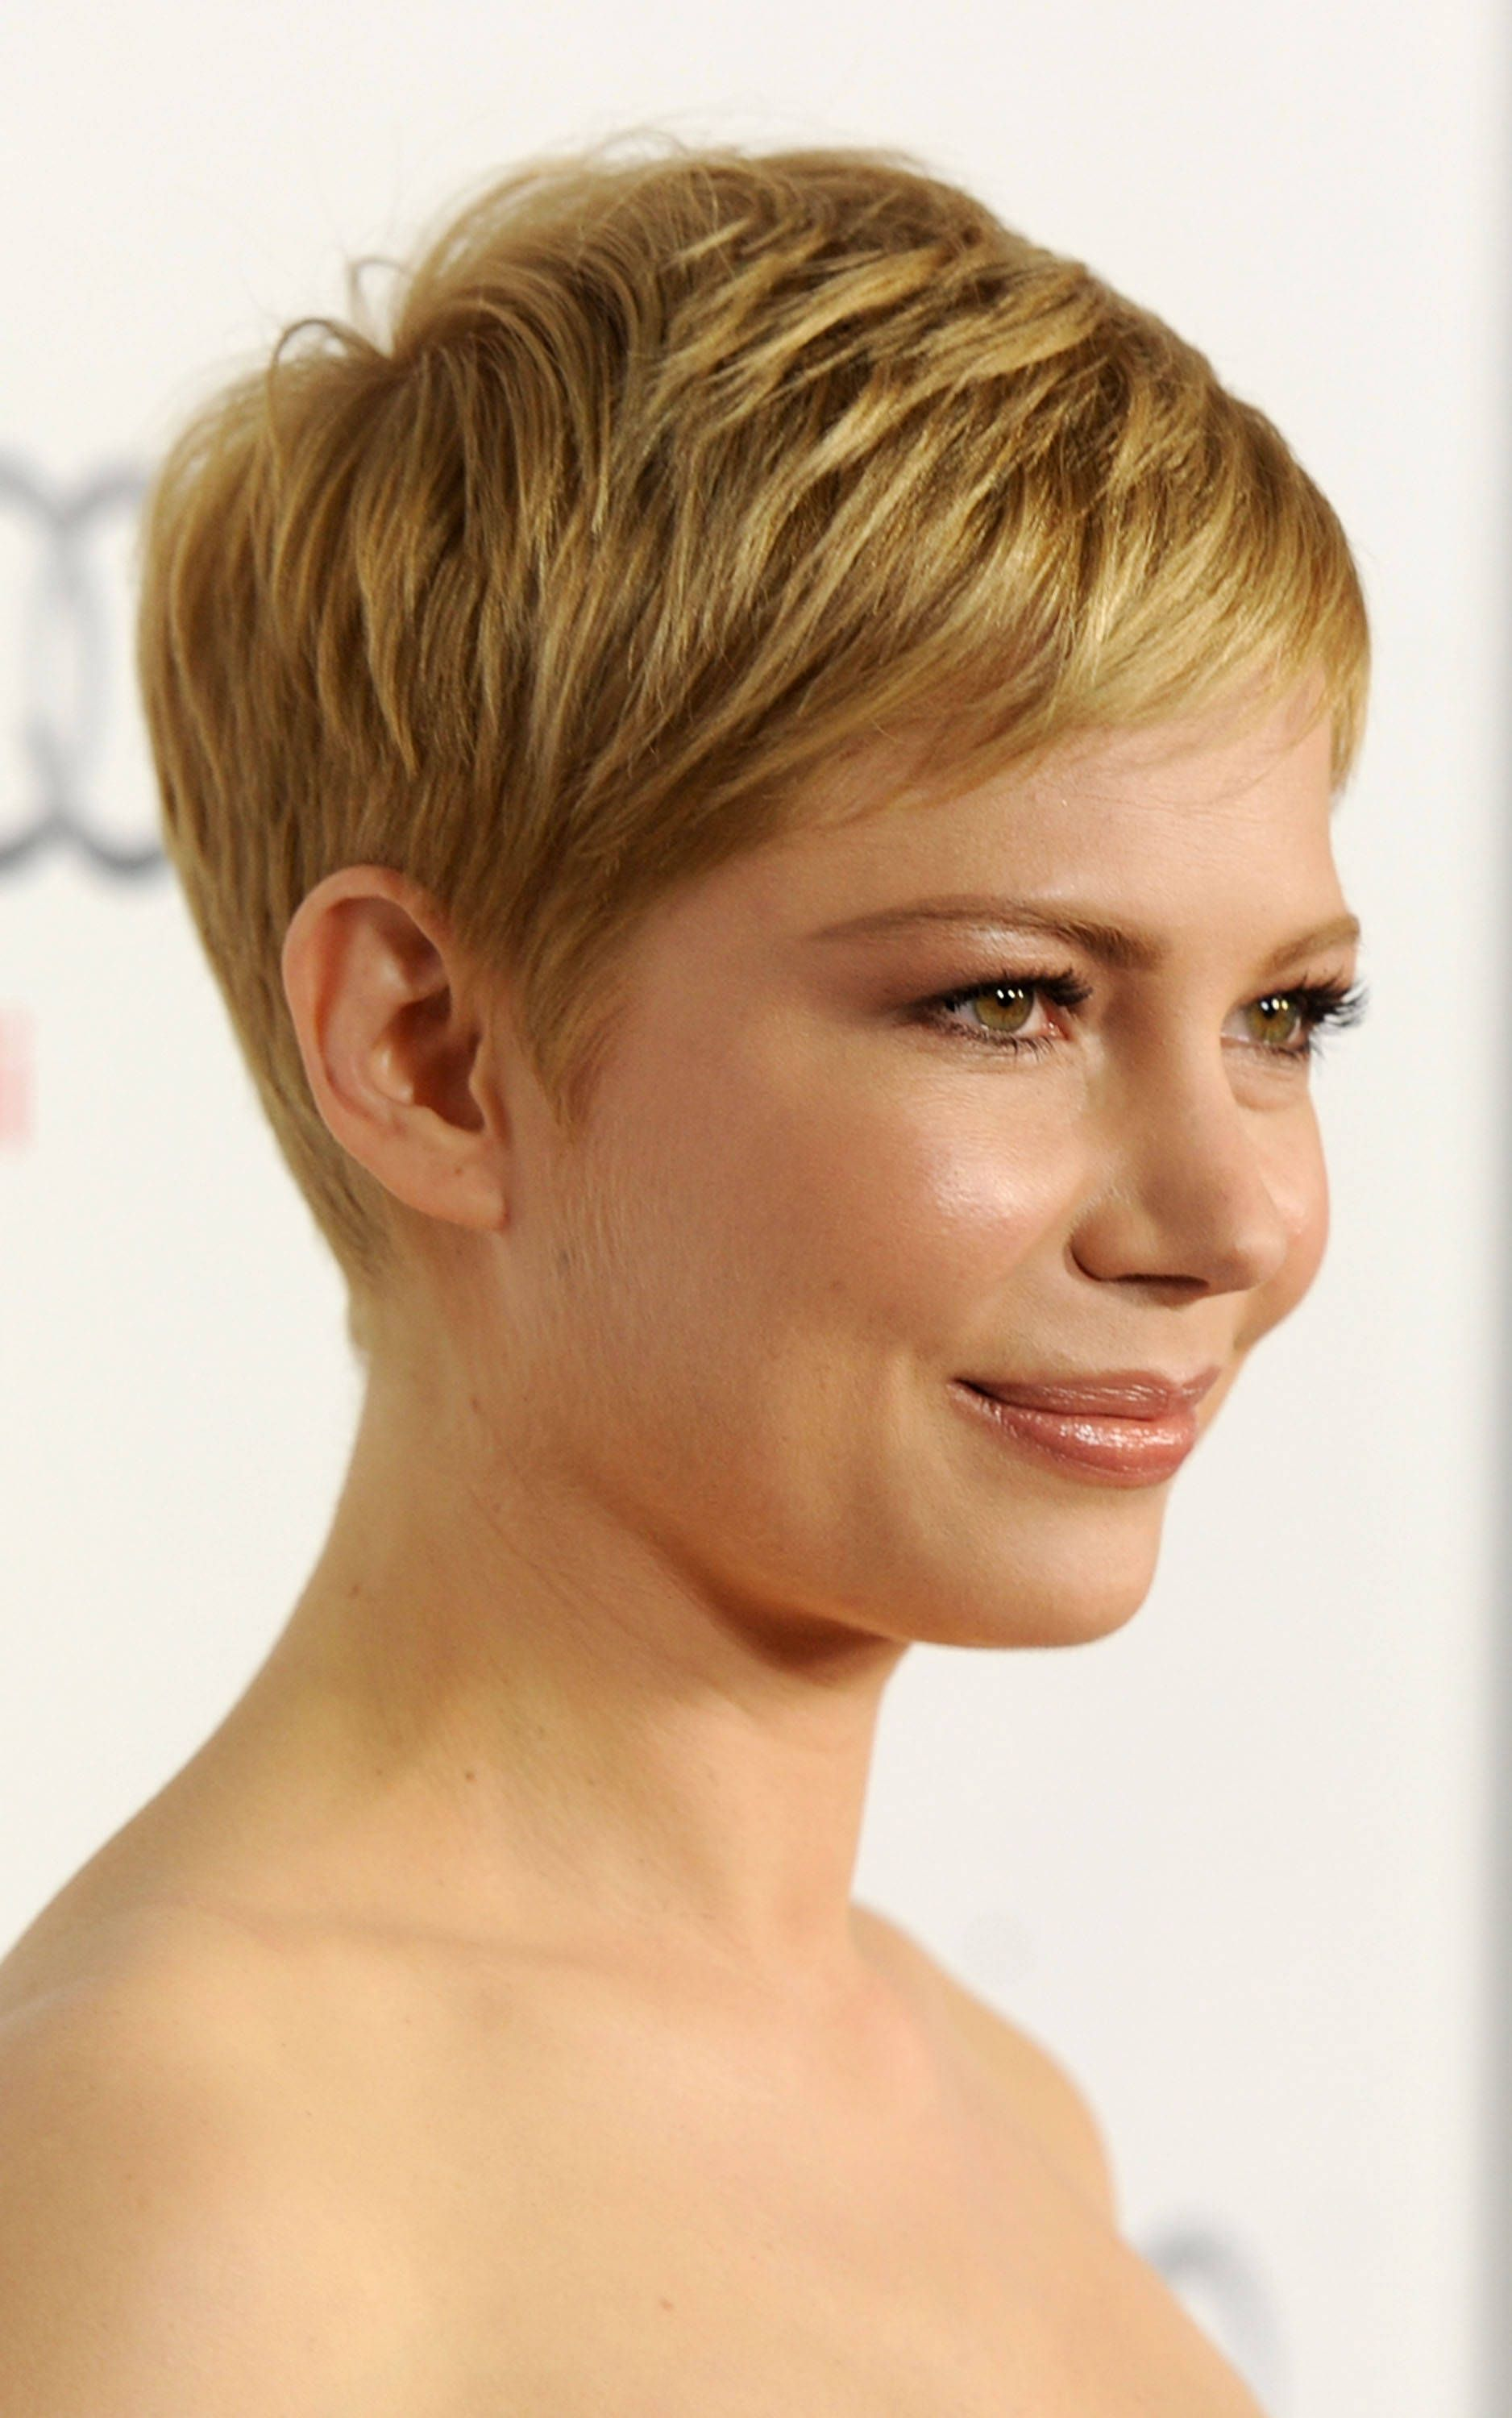 30 trendy pixie hairstyles: women short hair cuts | chemo